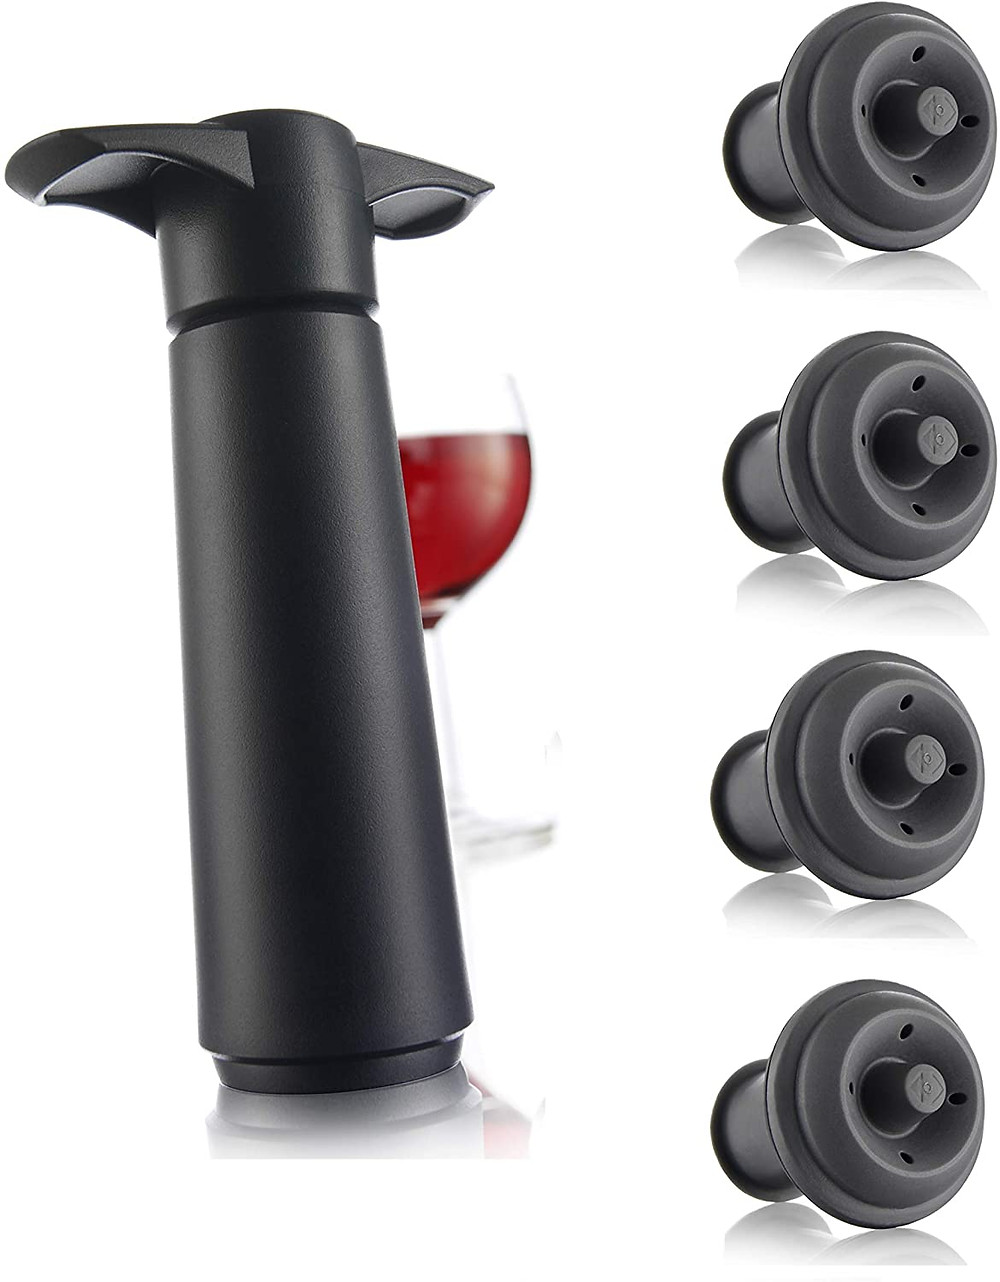 Wine saver pump, bottle stoppers, gifts for moms